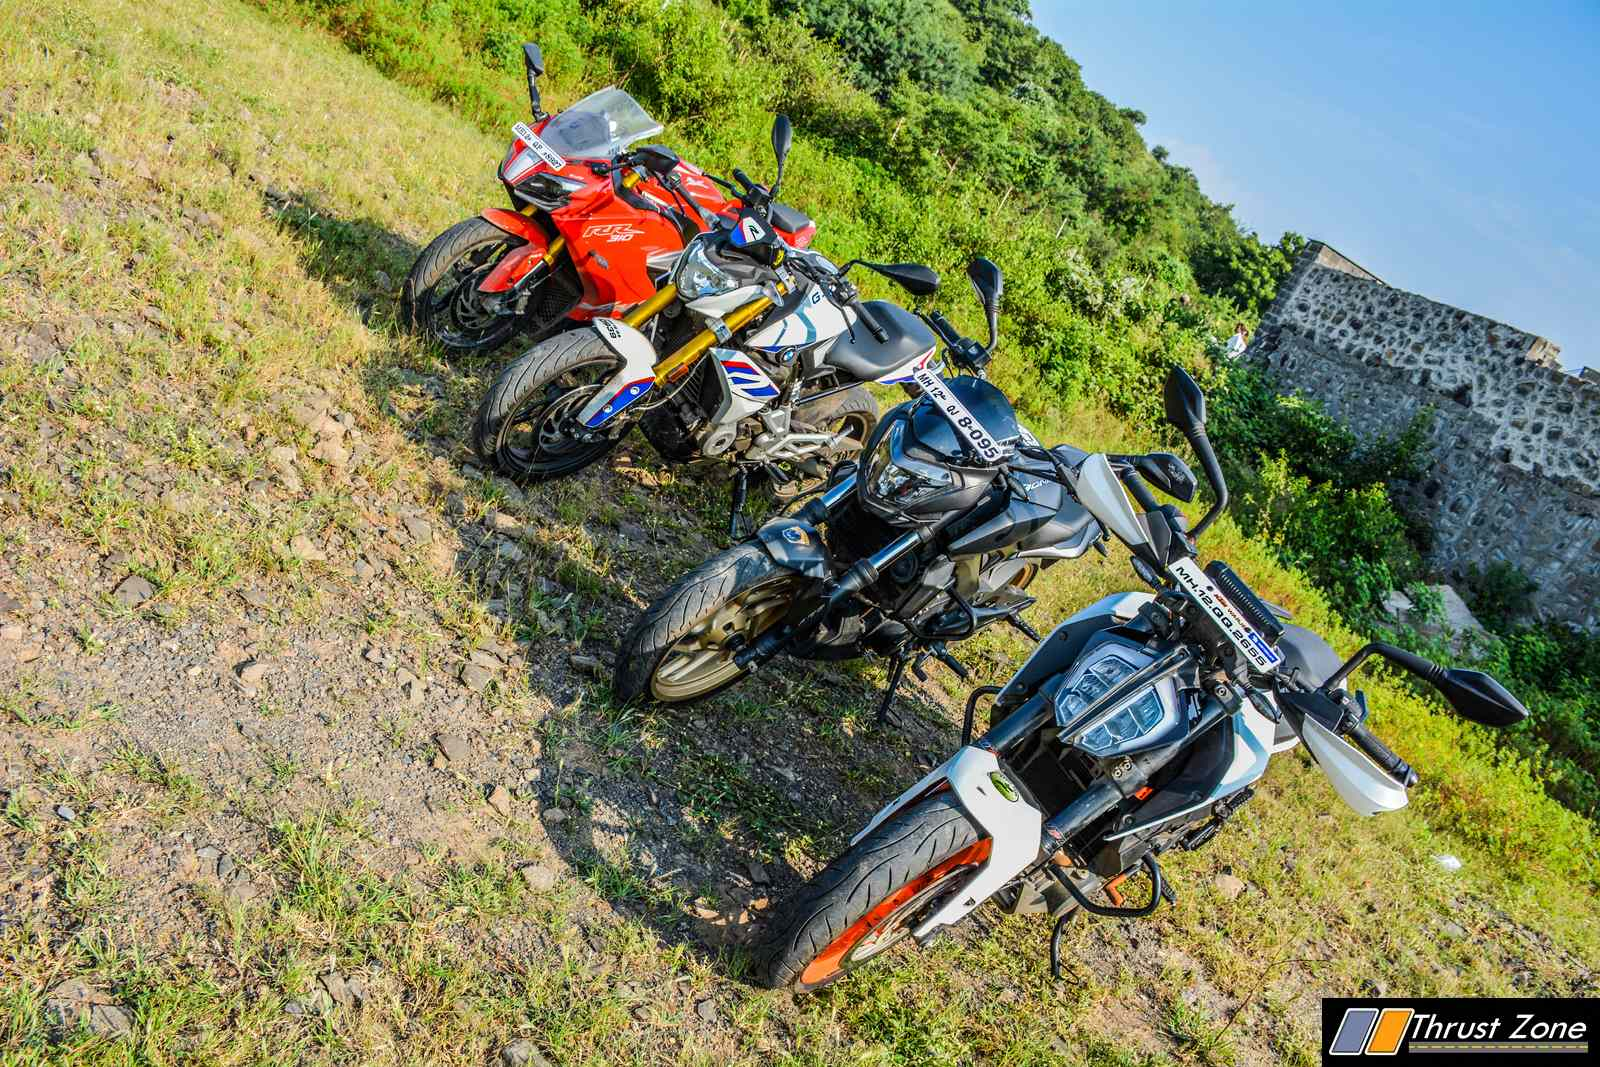 BMW G310R vs Duke 390 vs Dominar 400 vs Apache RR310 Review-8